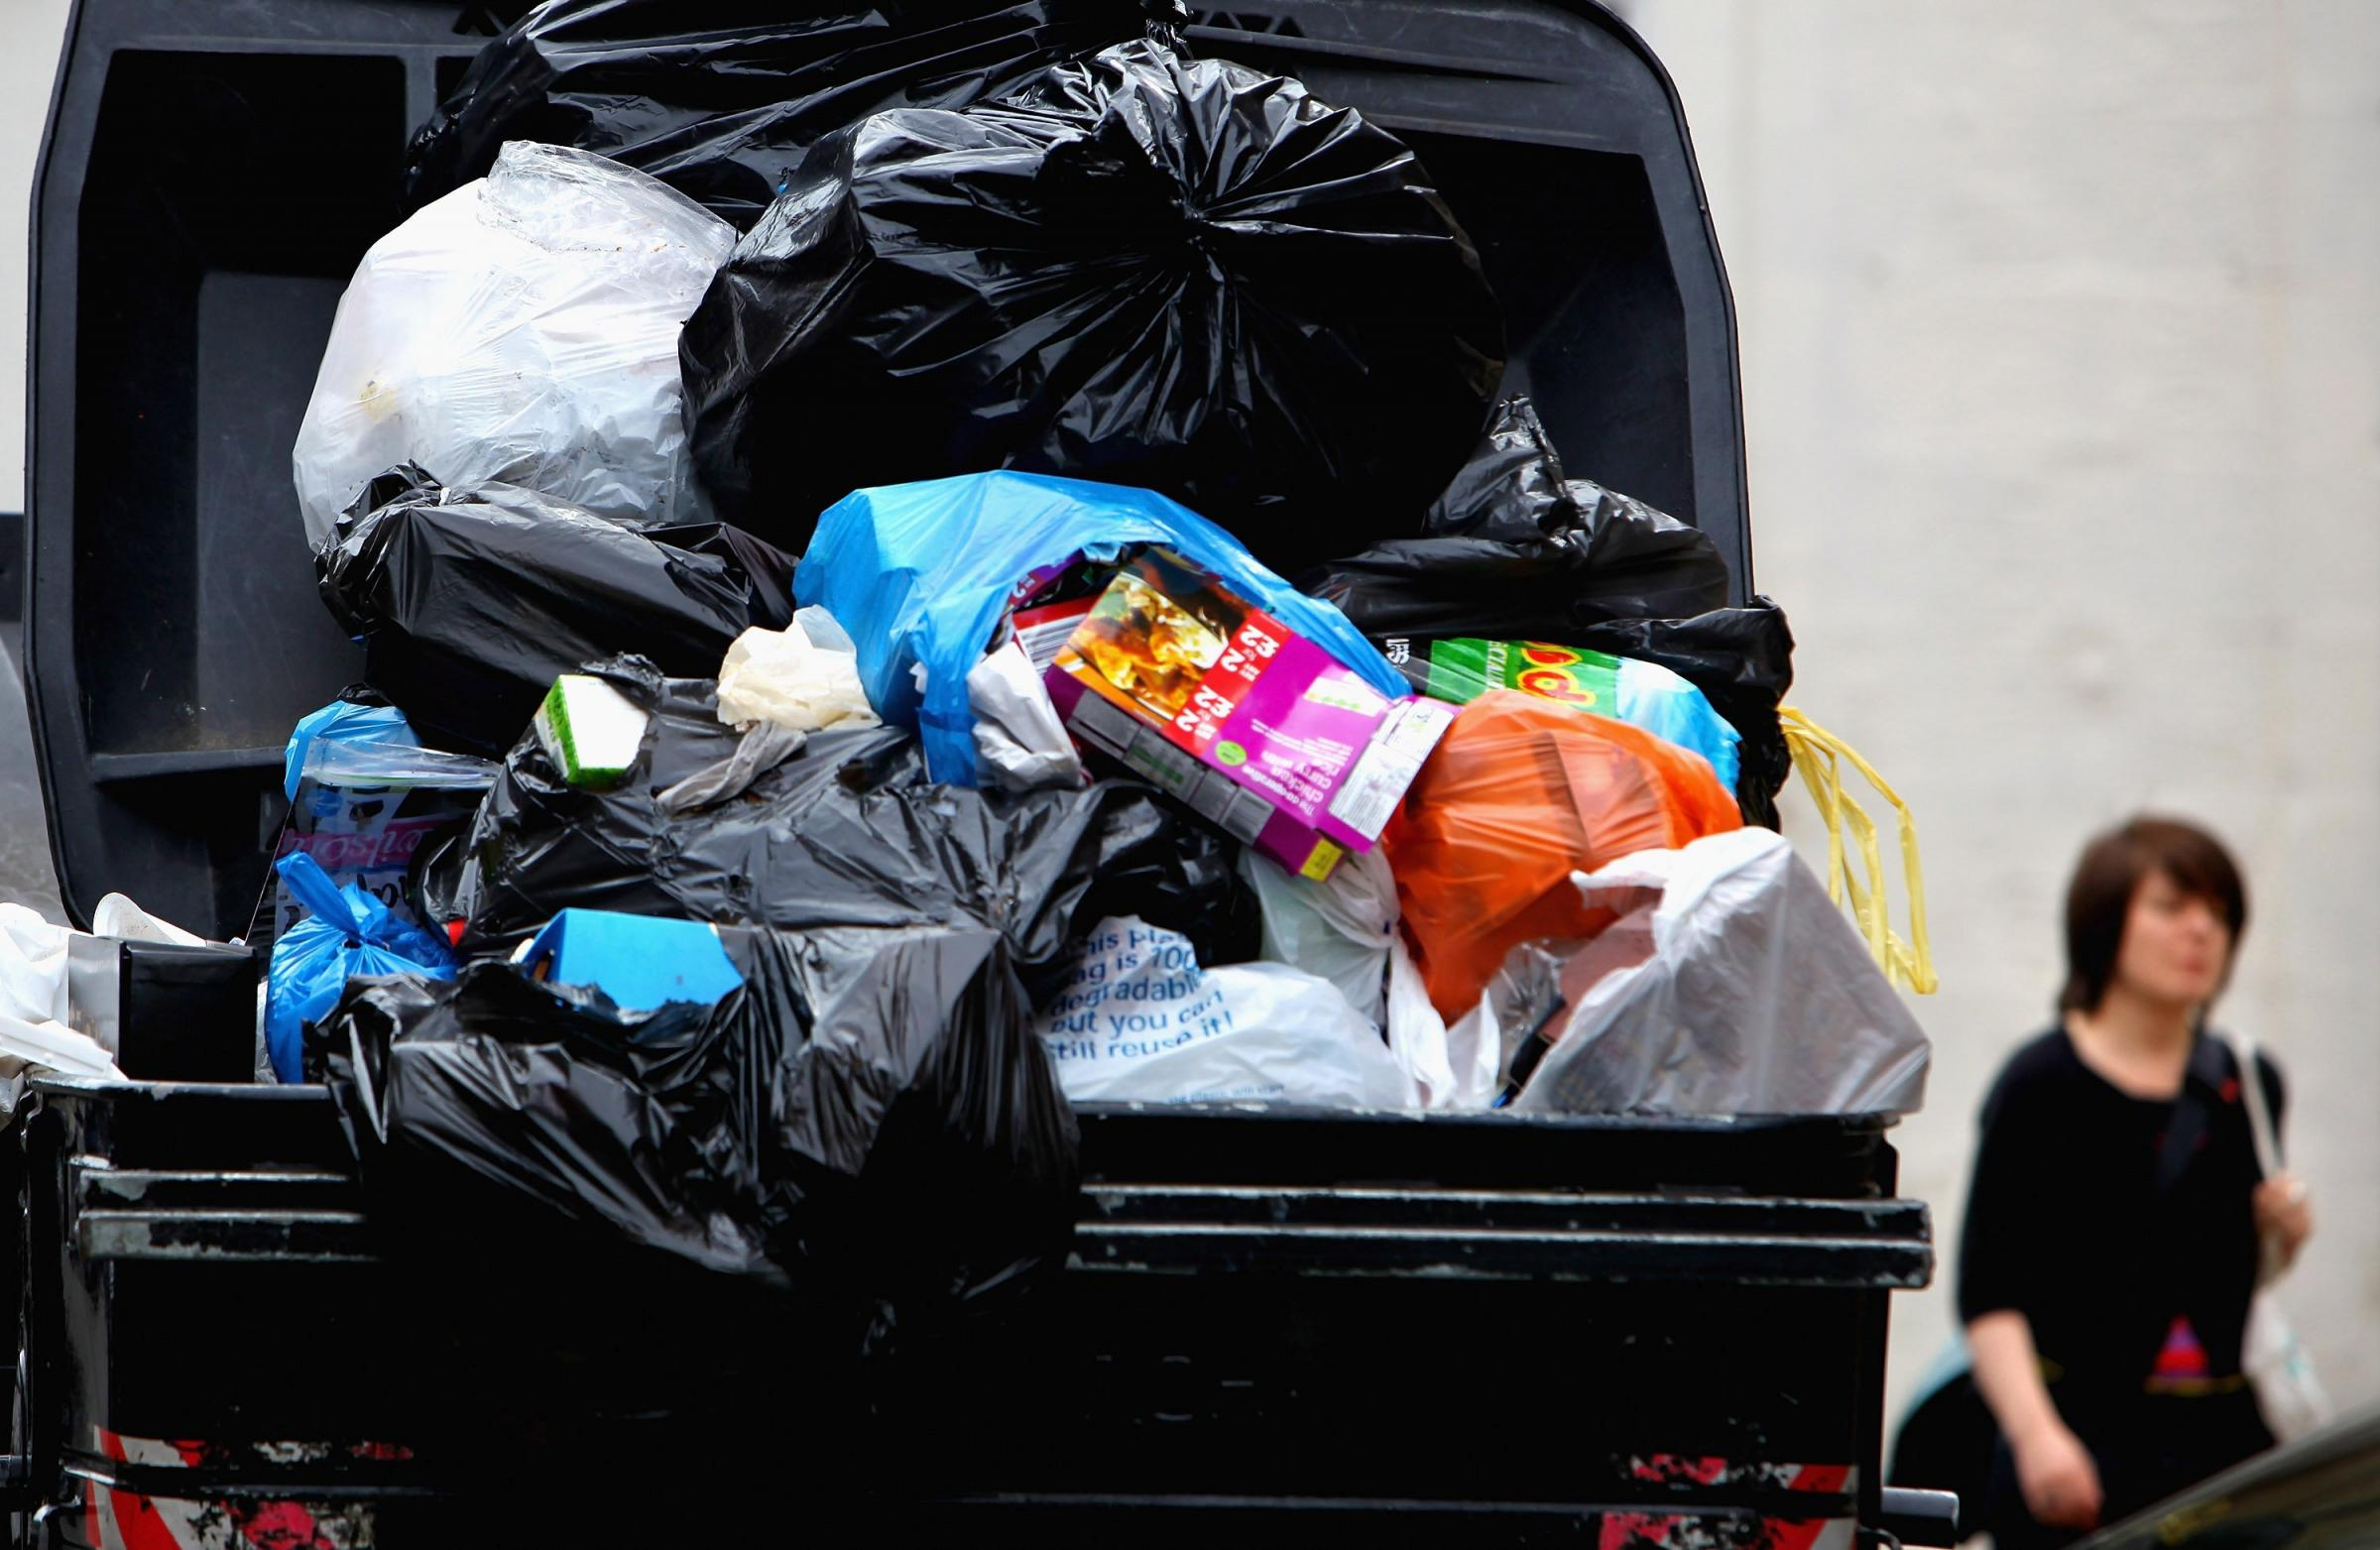 If councils can't even collect bins, should they be trusted with more tax-raising powers?